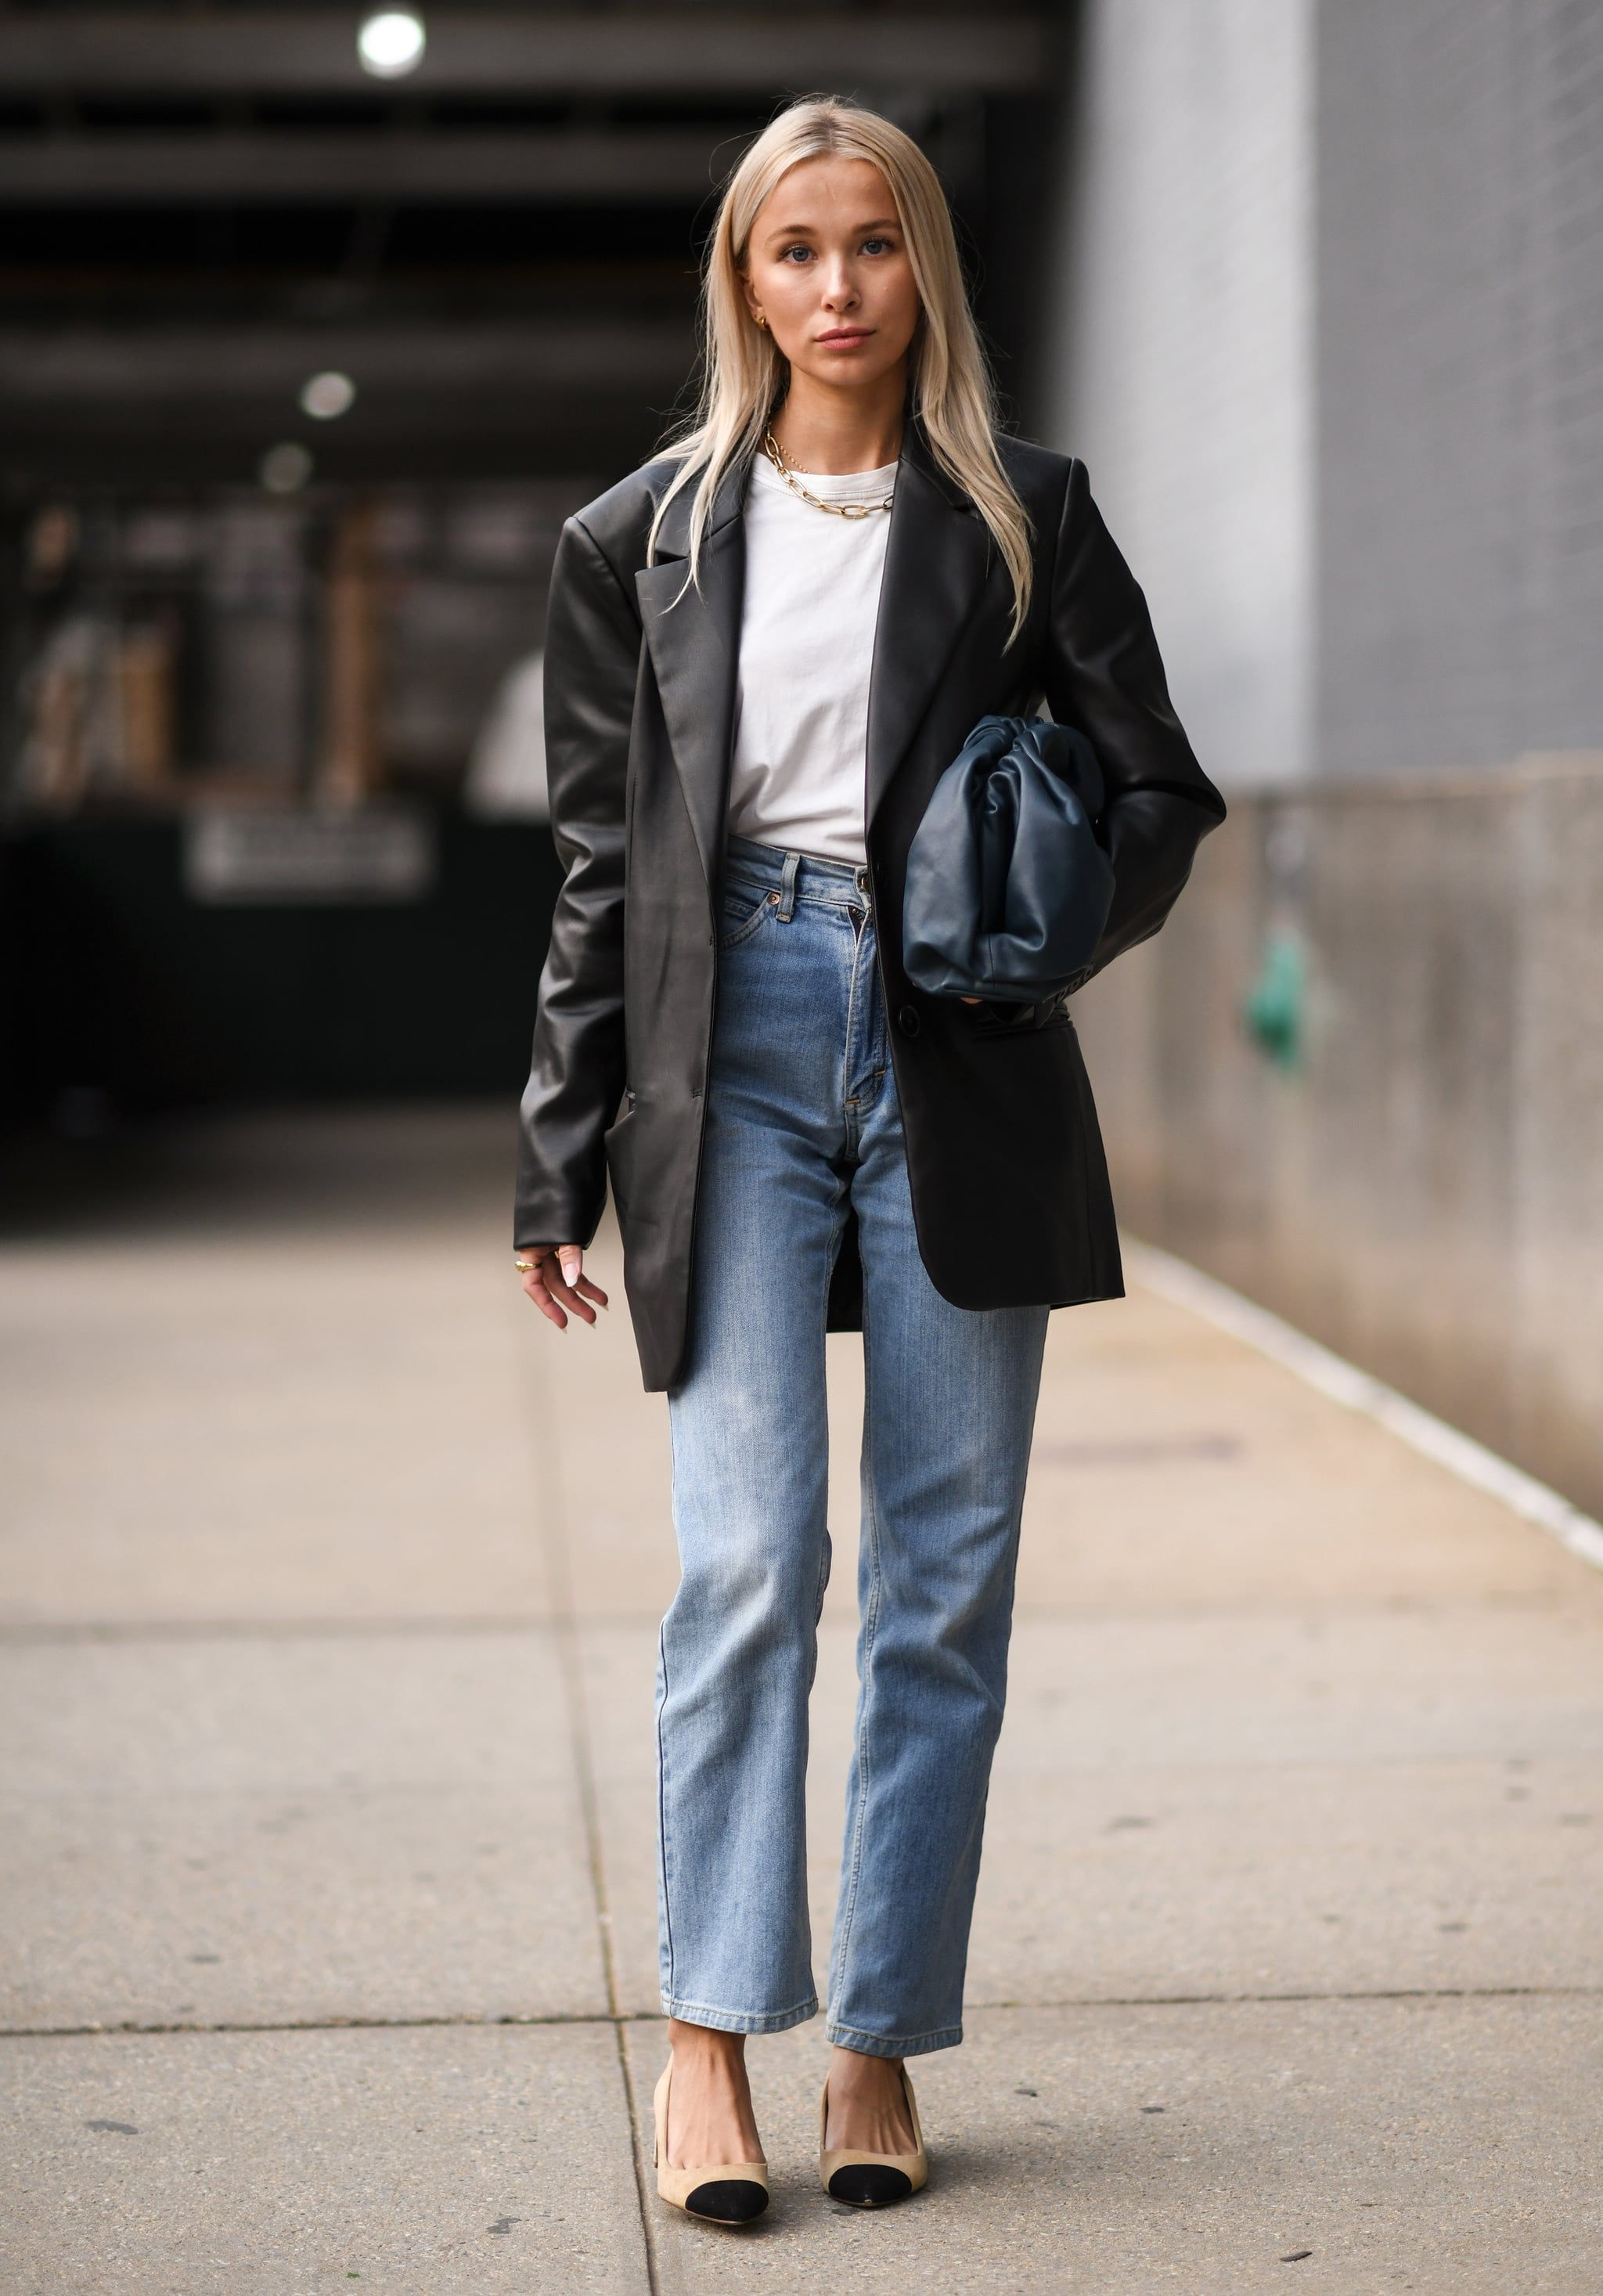 New York Fashion Week's Street Style Will Get You Excited About Fashion All Over Again